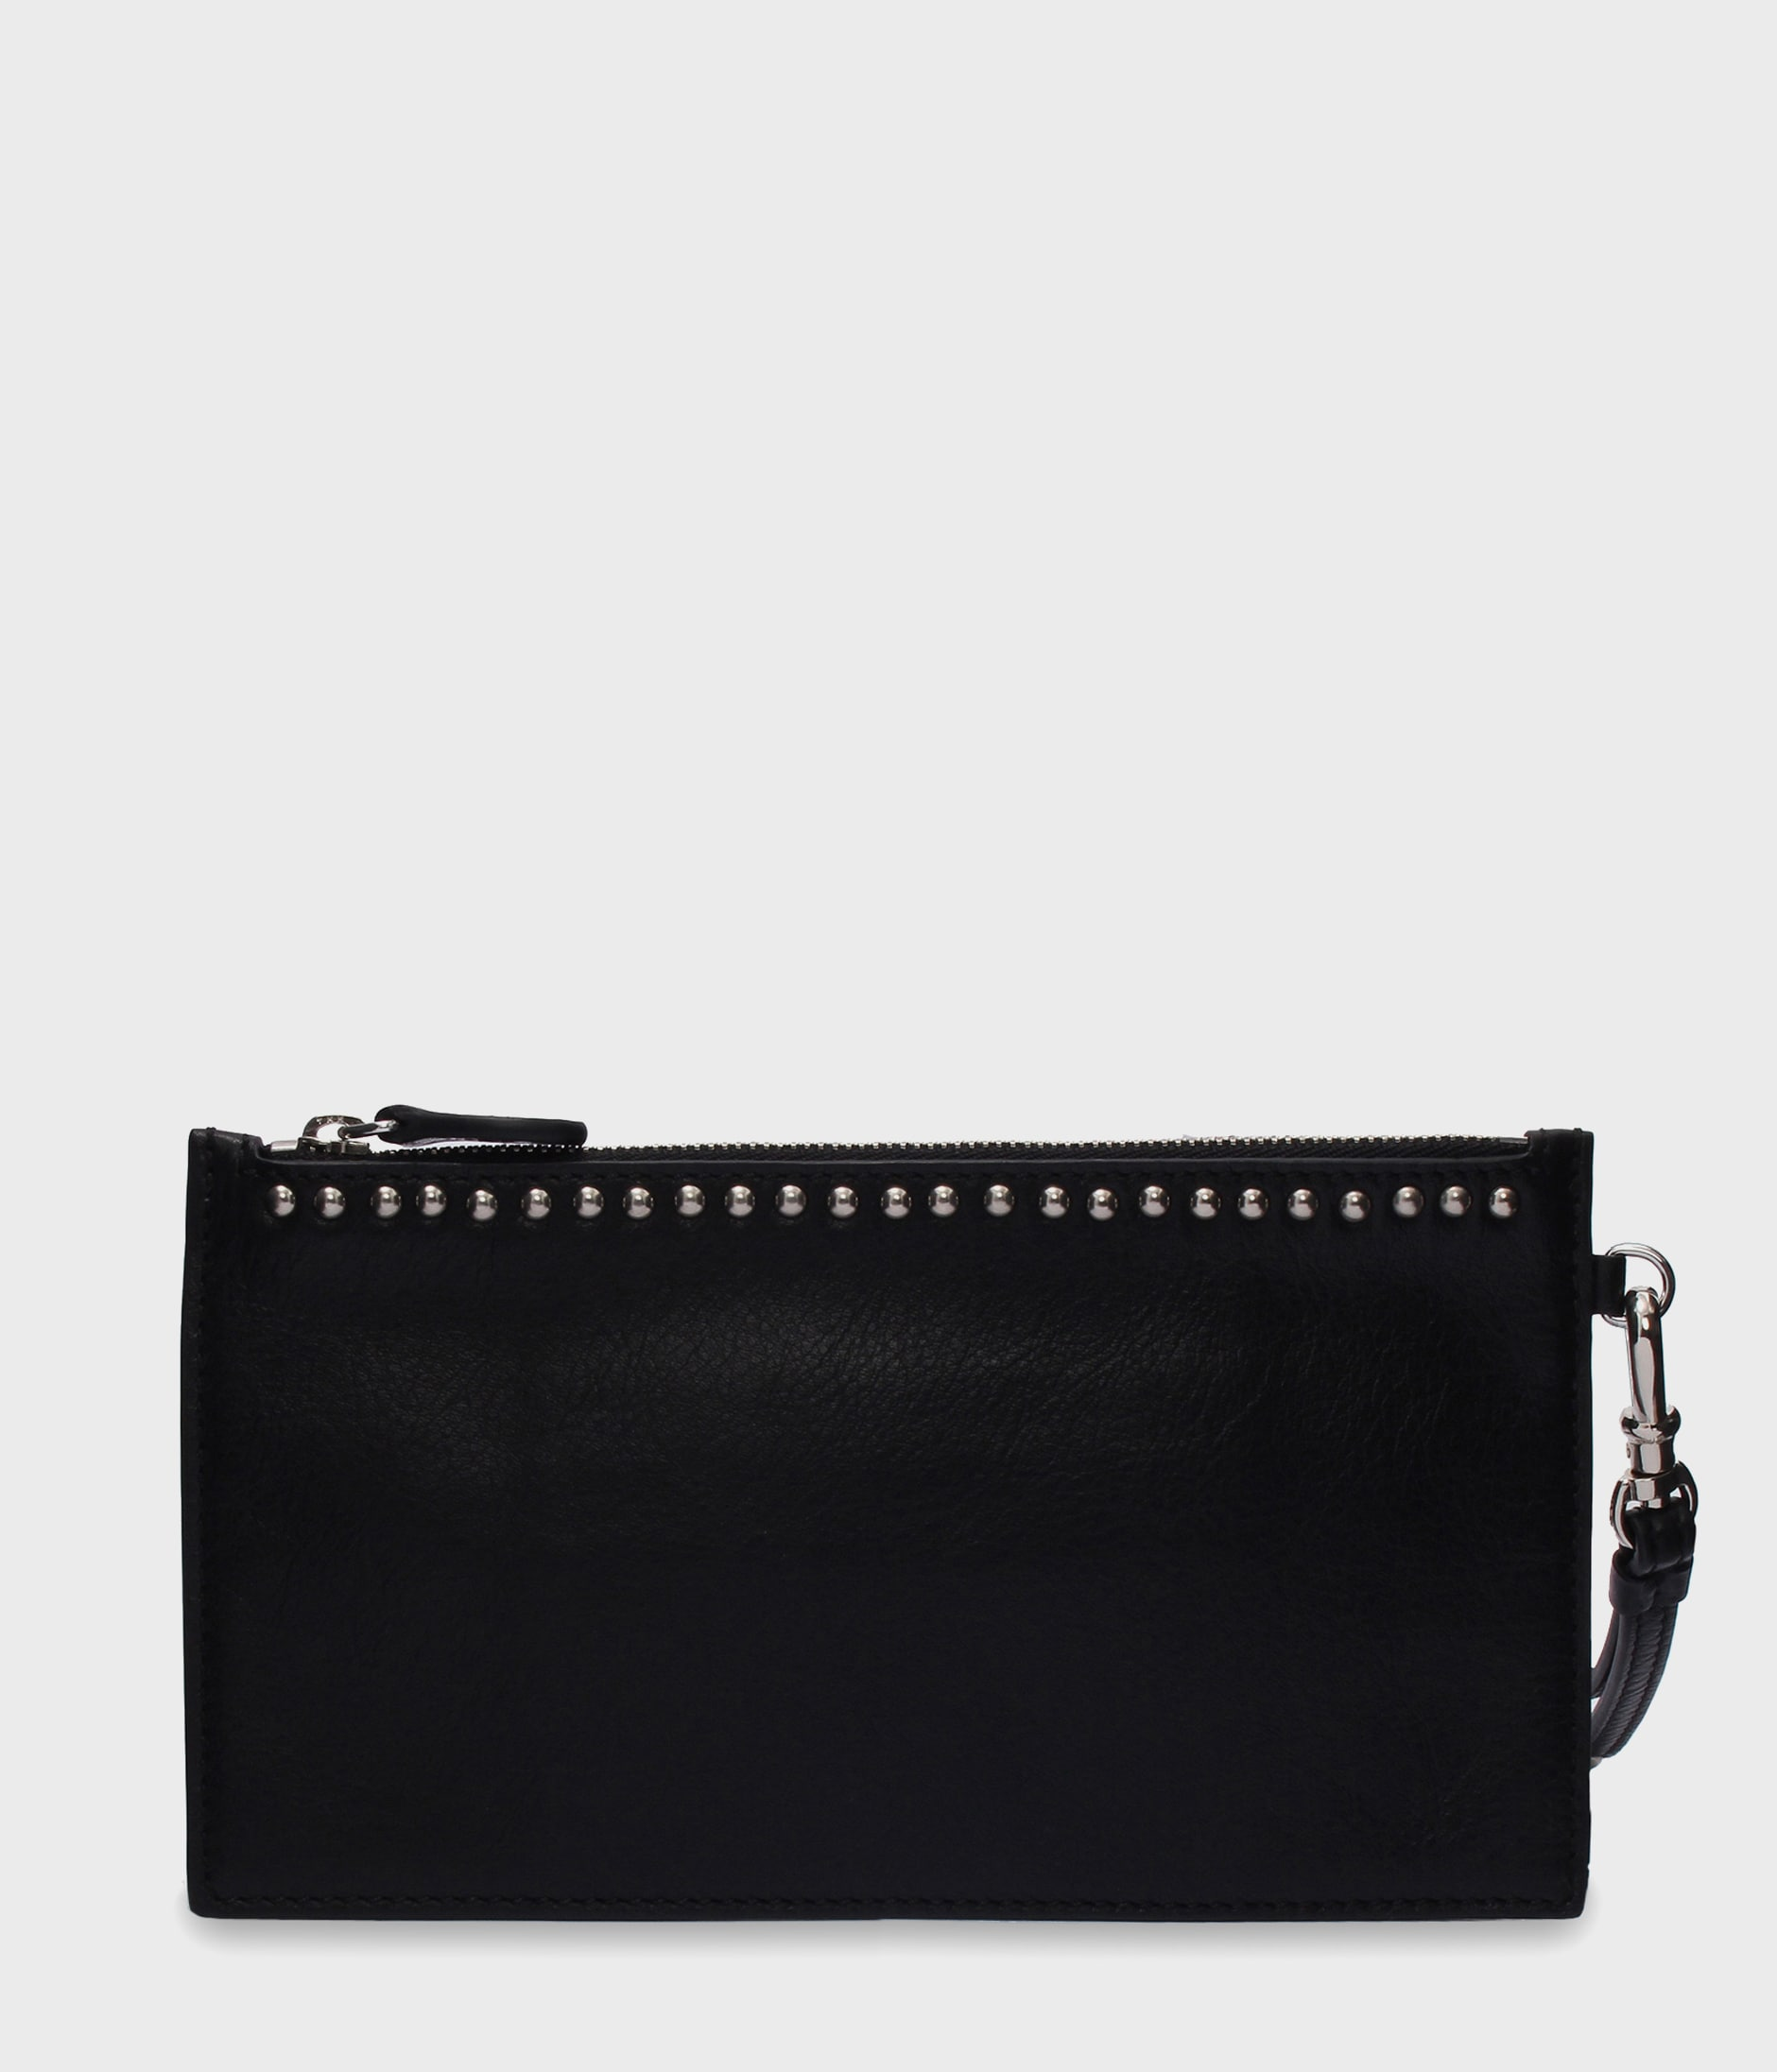 TRAVEL WALLET WITH STUDS 詳細画像 BLACK 1